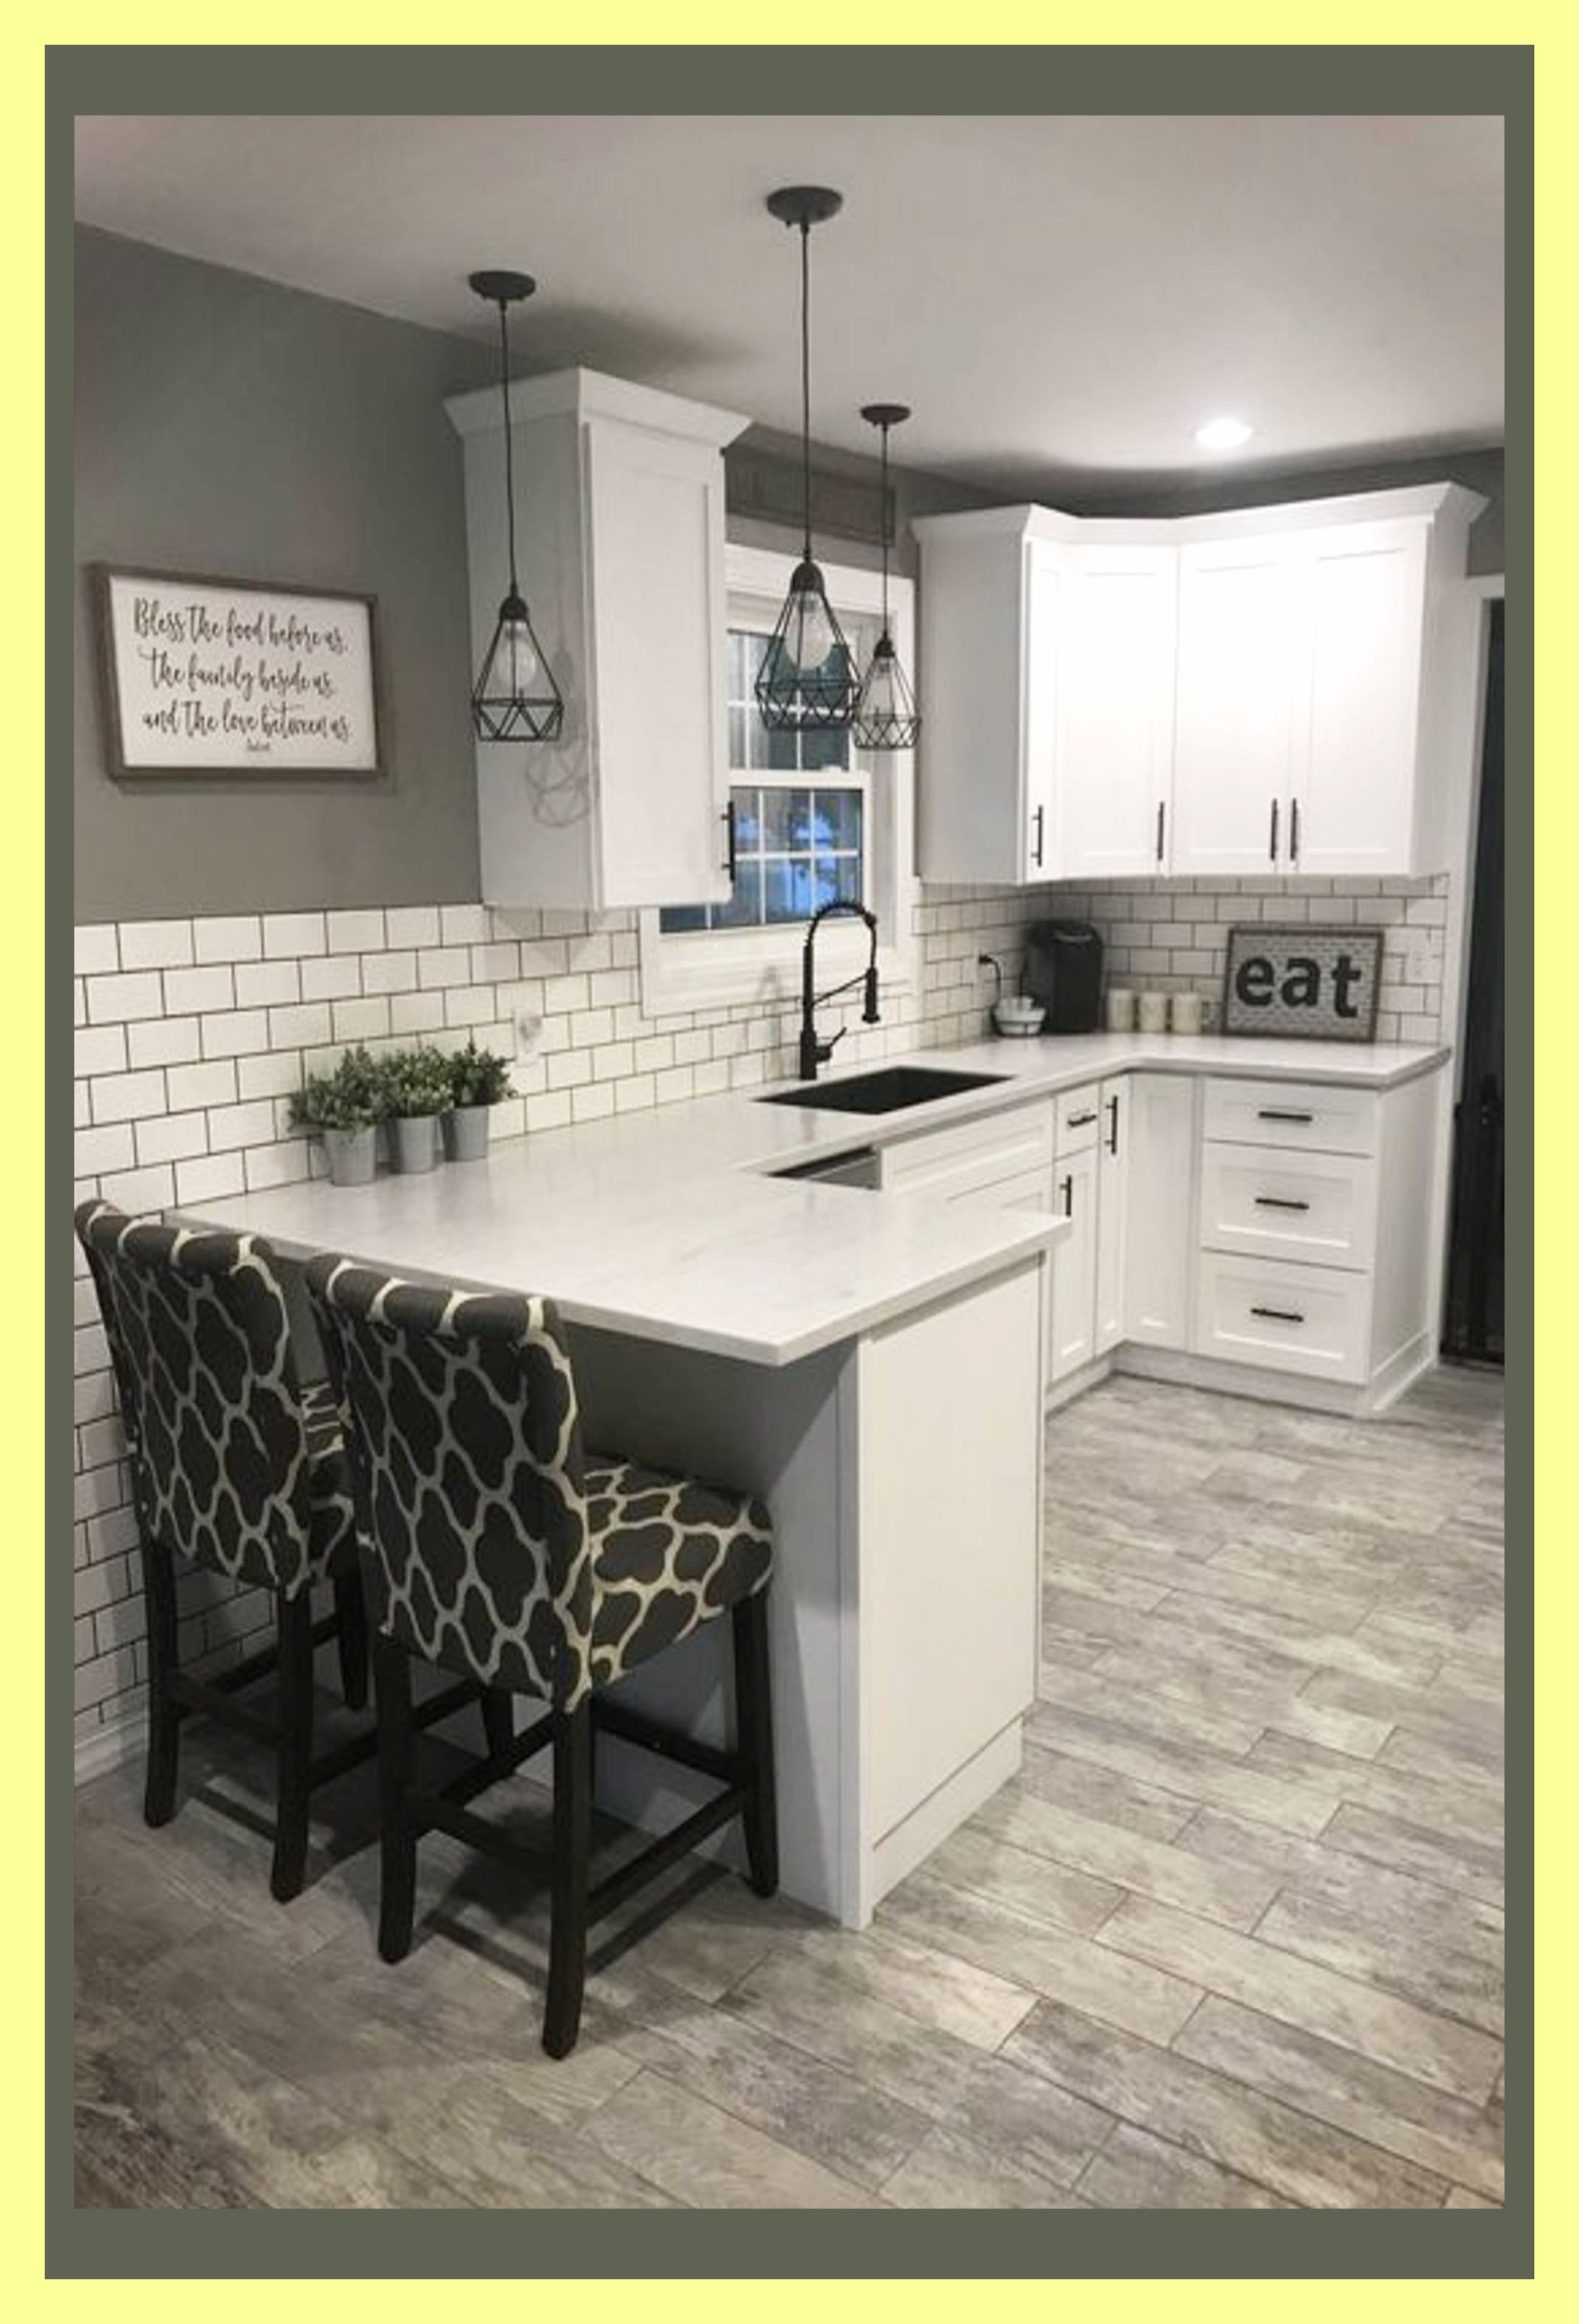 Farmhouse Kitchen Ideas For A Country Kitchen Remodel On A Budget Kitchenremodel In 2020 Kitchen Remodel Small Kitchen Design Countertops Kitchen Style